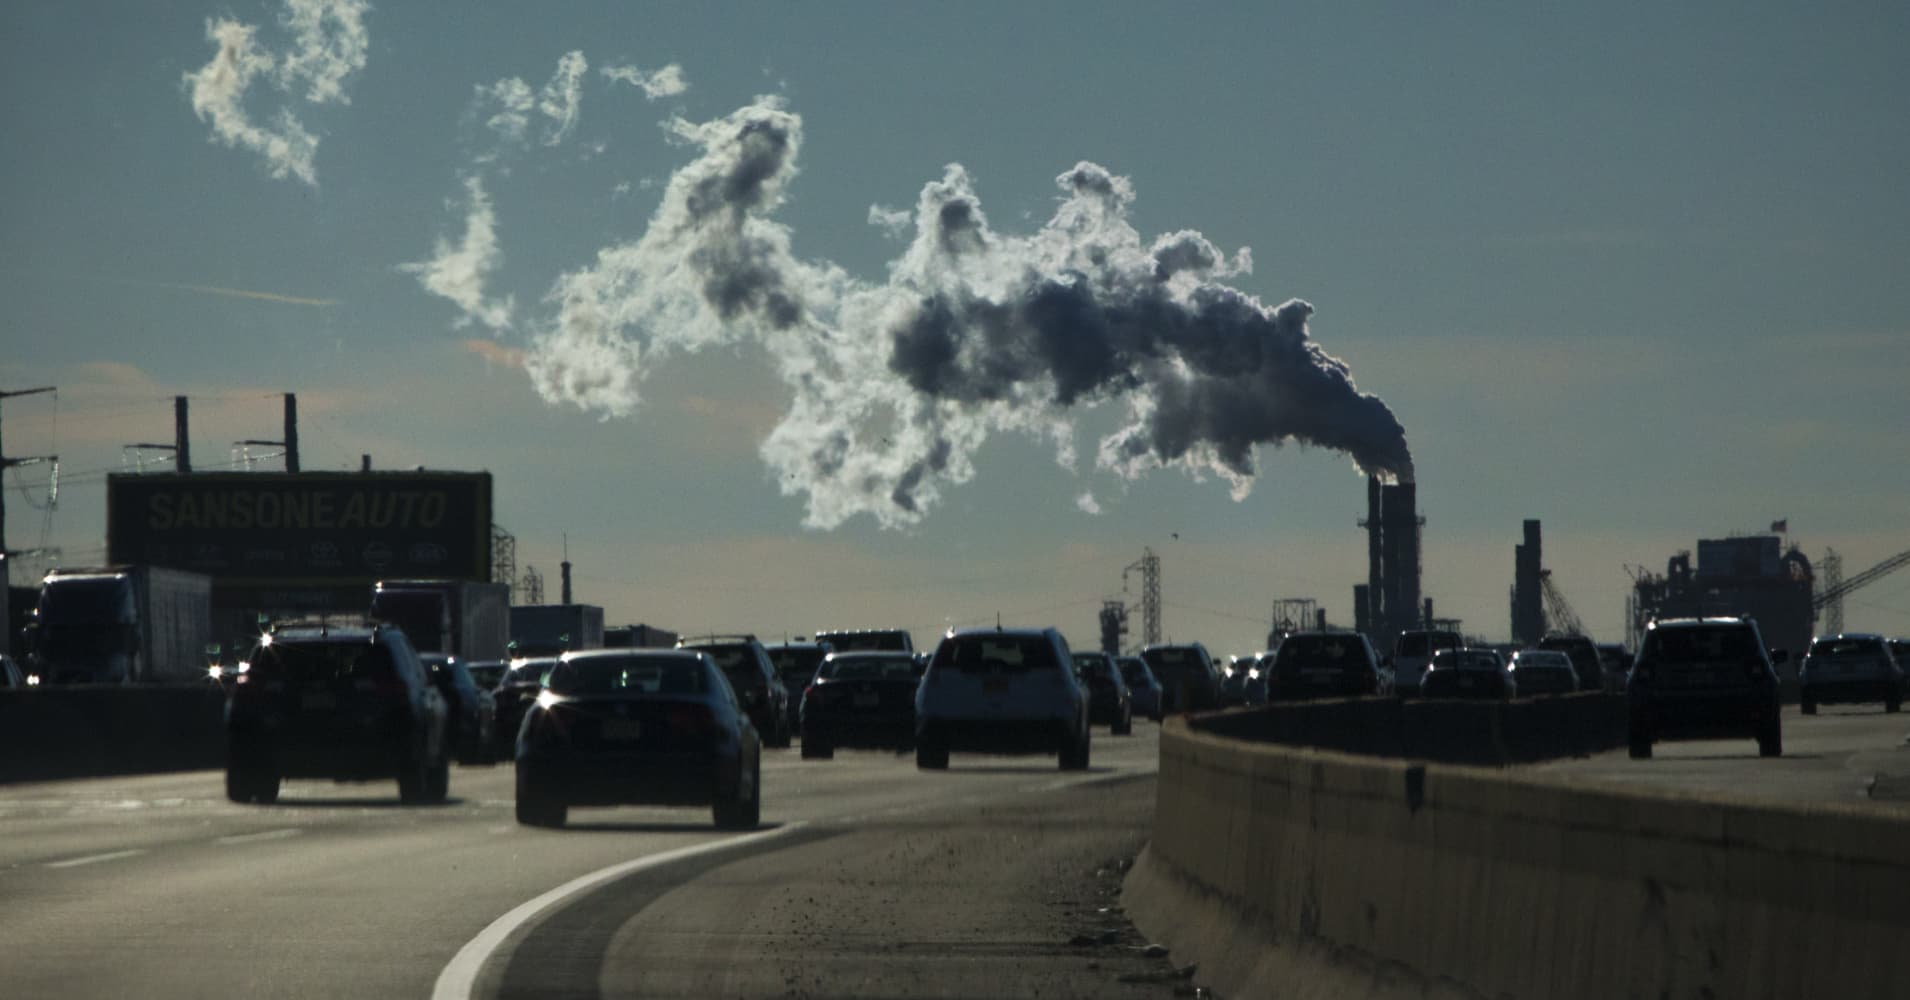 US carbon emissions see largest yearly gain in 8 years, data show